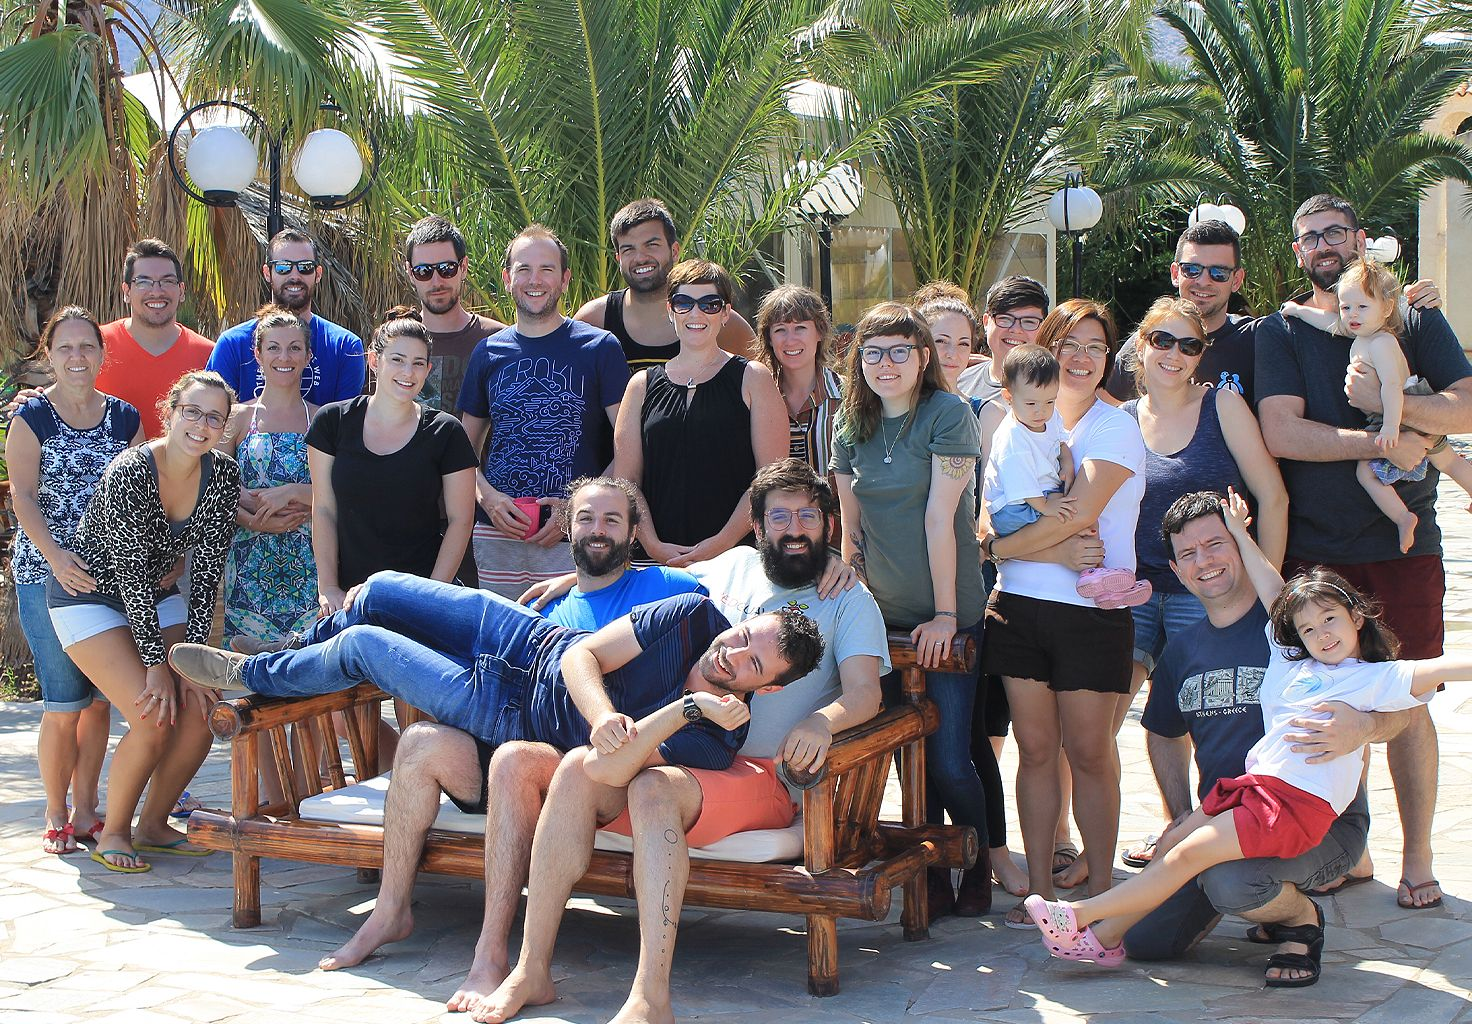 A group photo of the Cliniko team and family members in Greece.